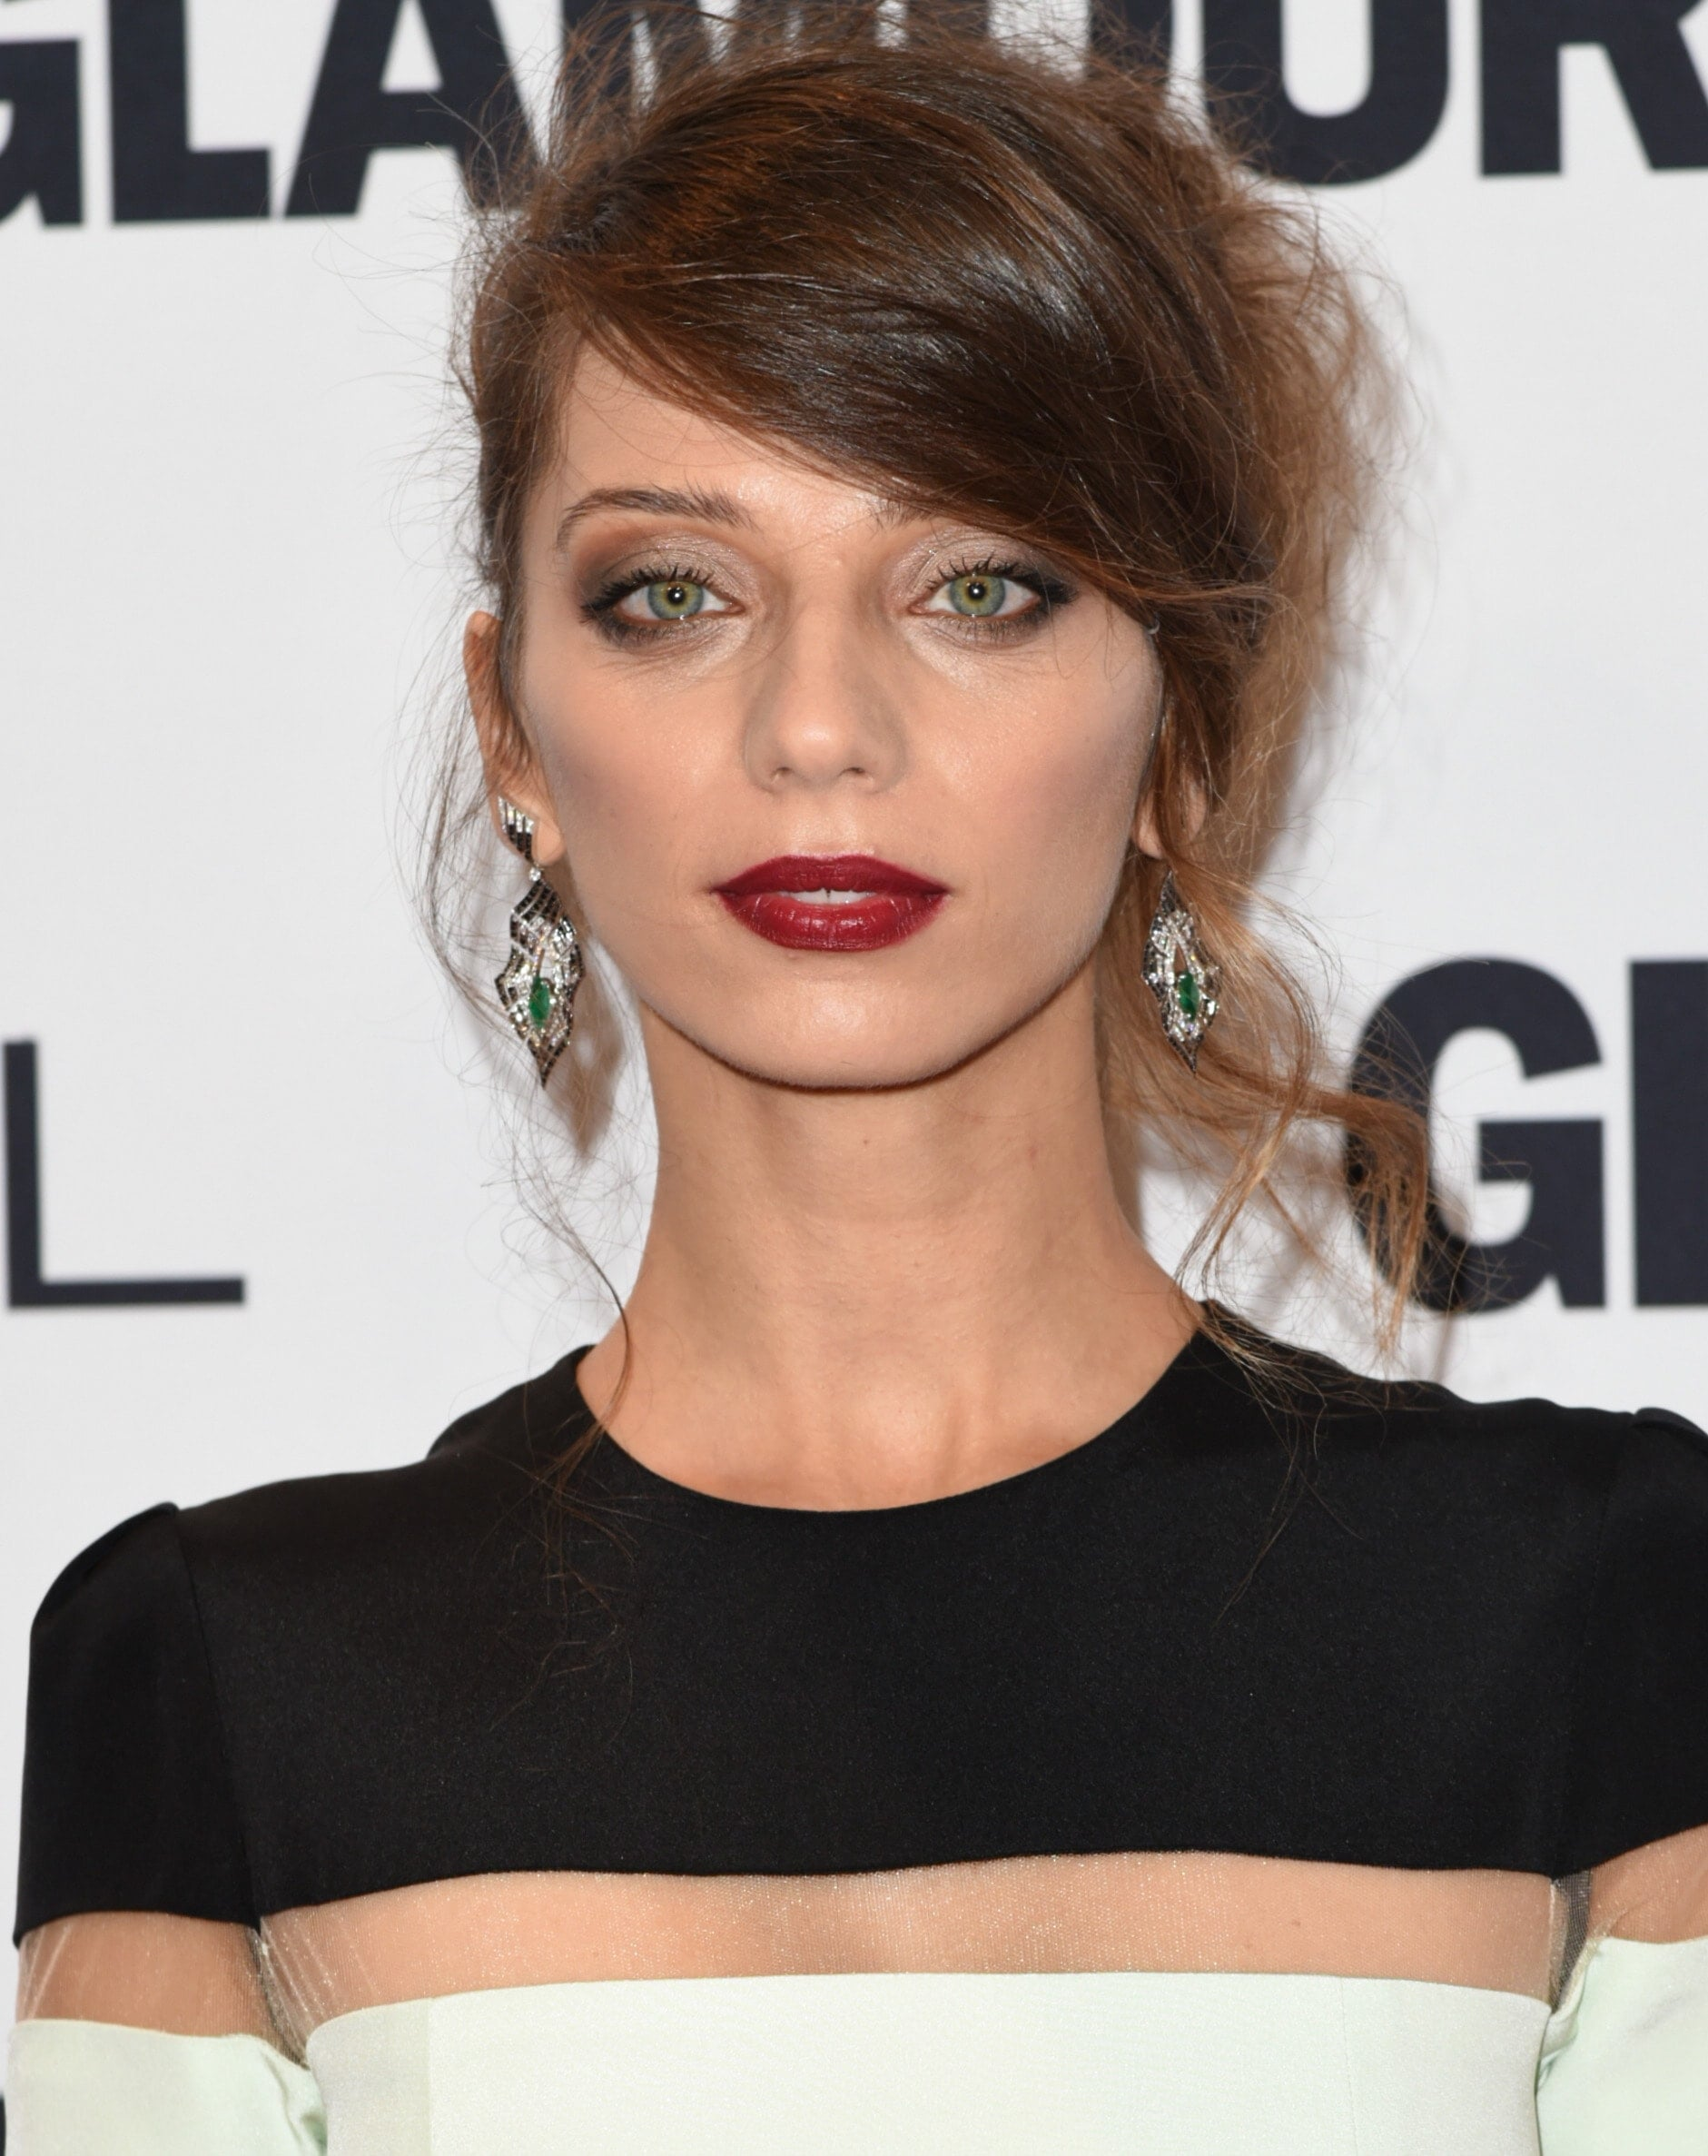 Westworld's Angela Sarafyan with long side bangs hairstyle